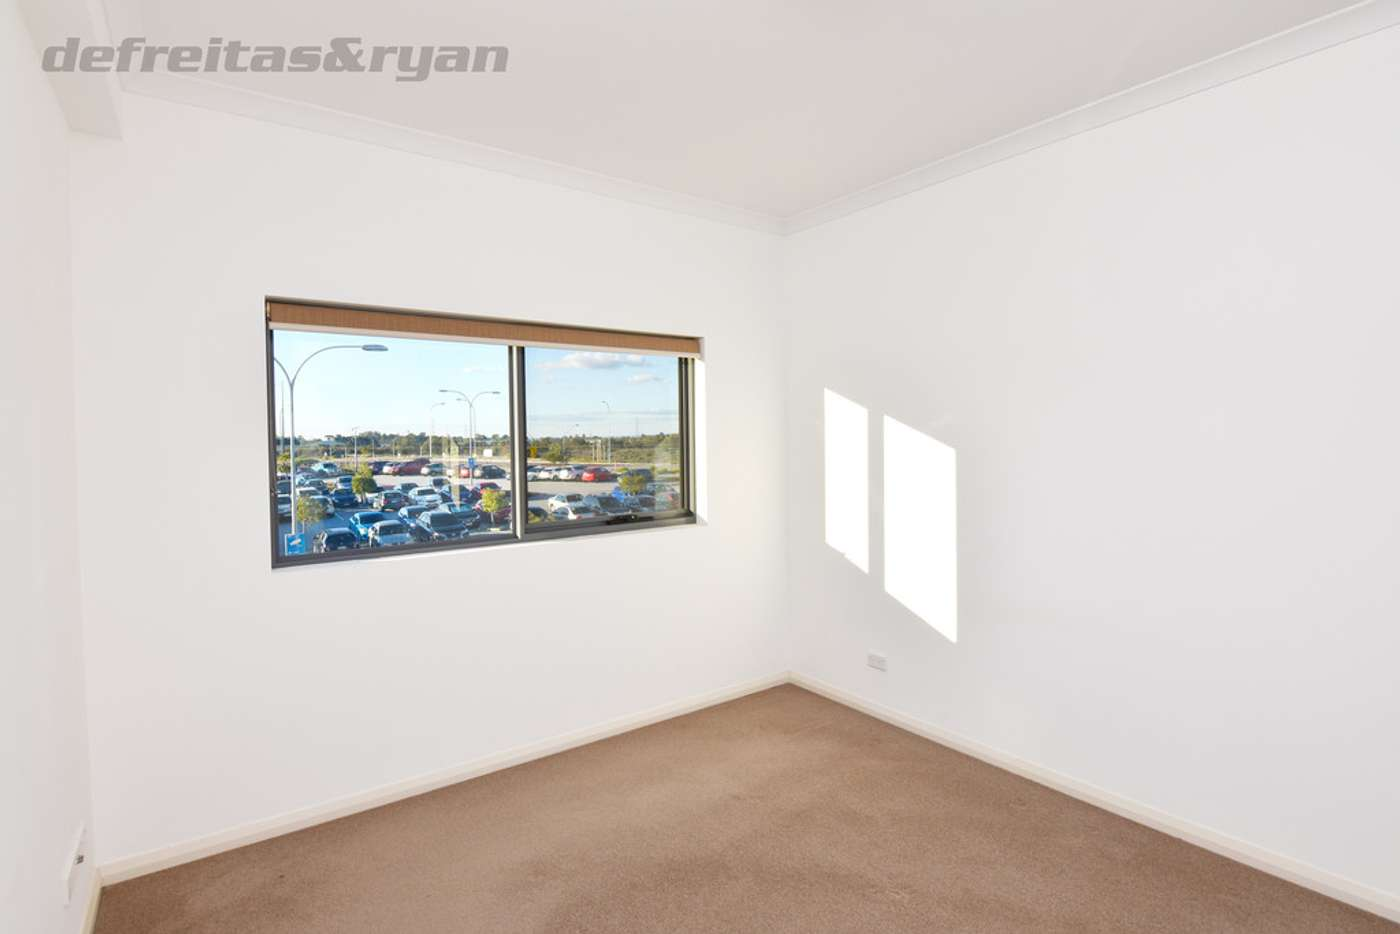 Sixth view of Homely apartment listing, 1/23 Junction Boulevard, Cockburn Central WA 6164